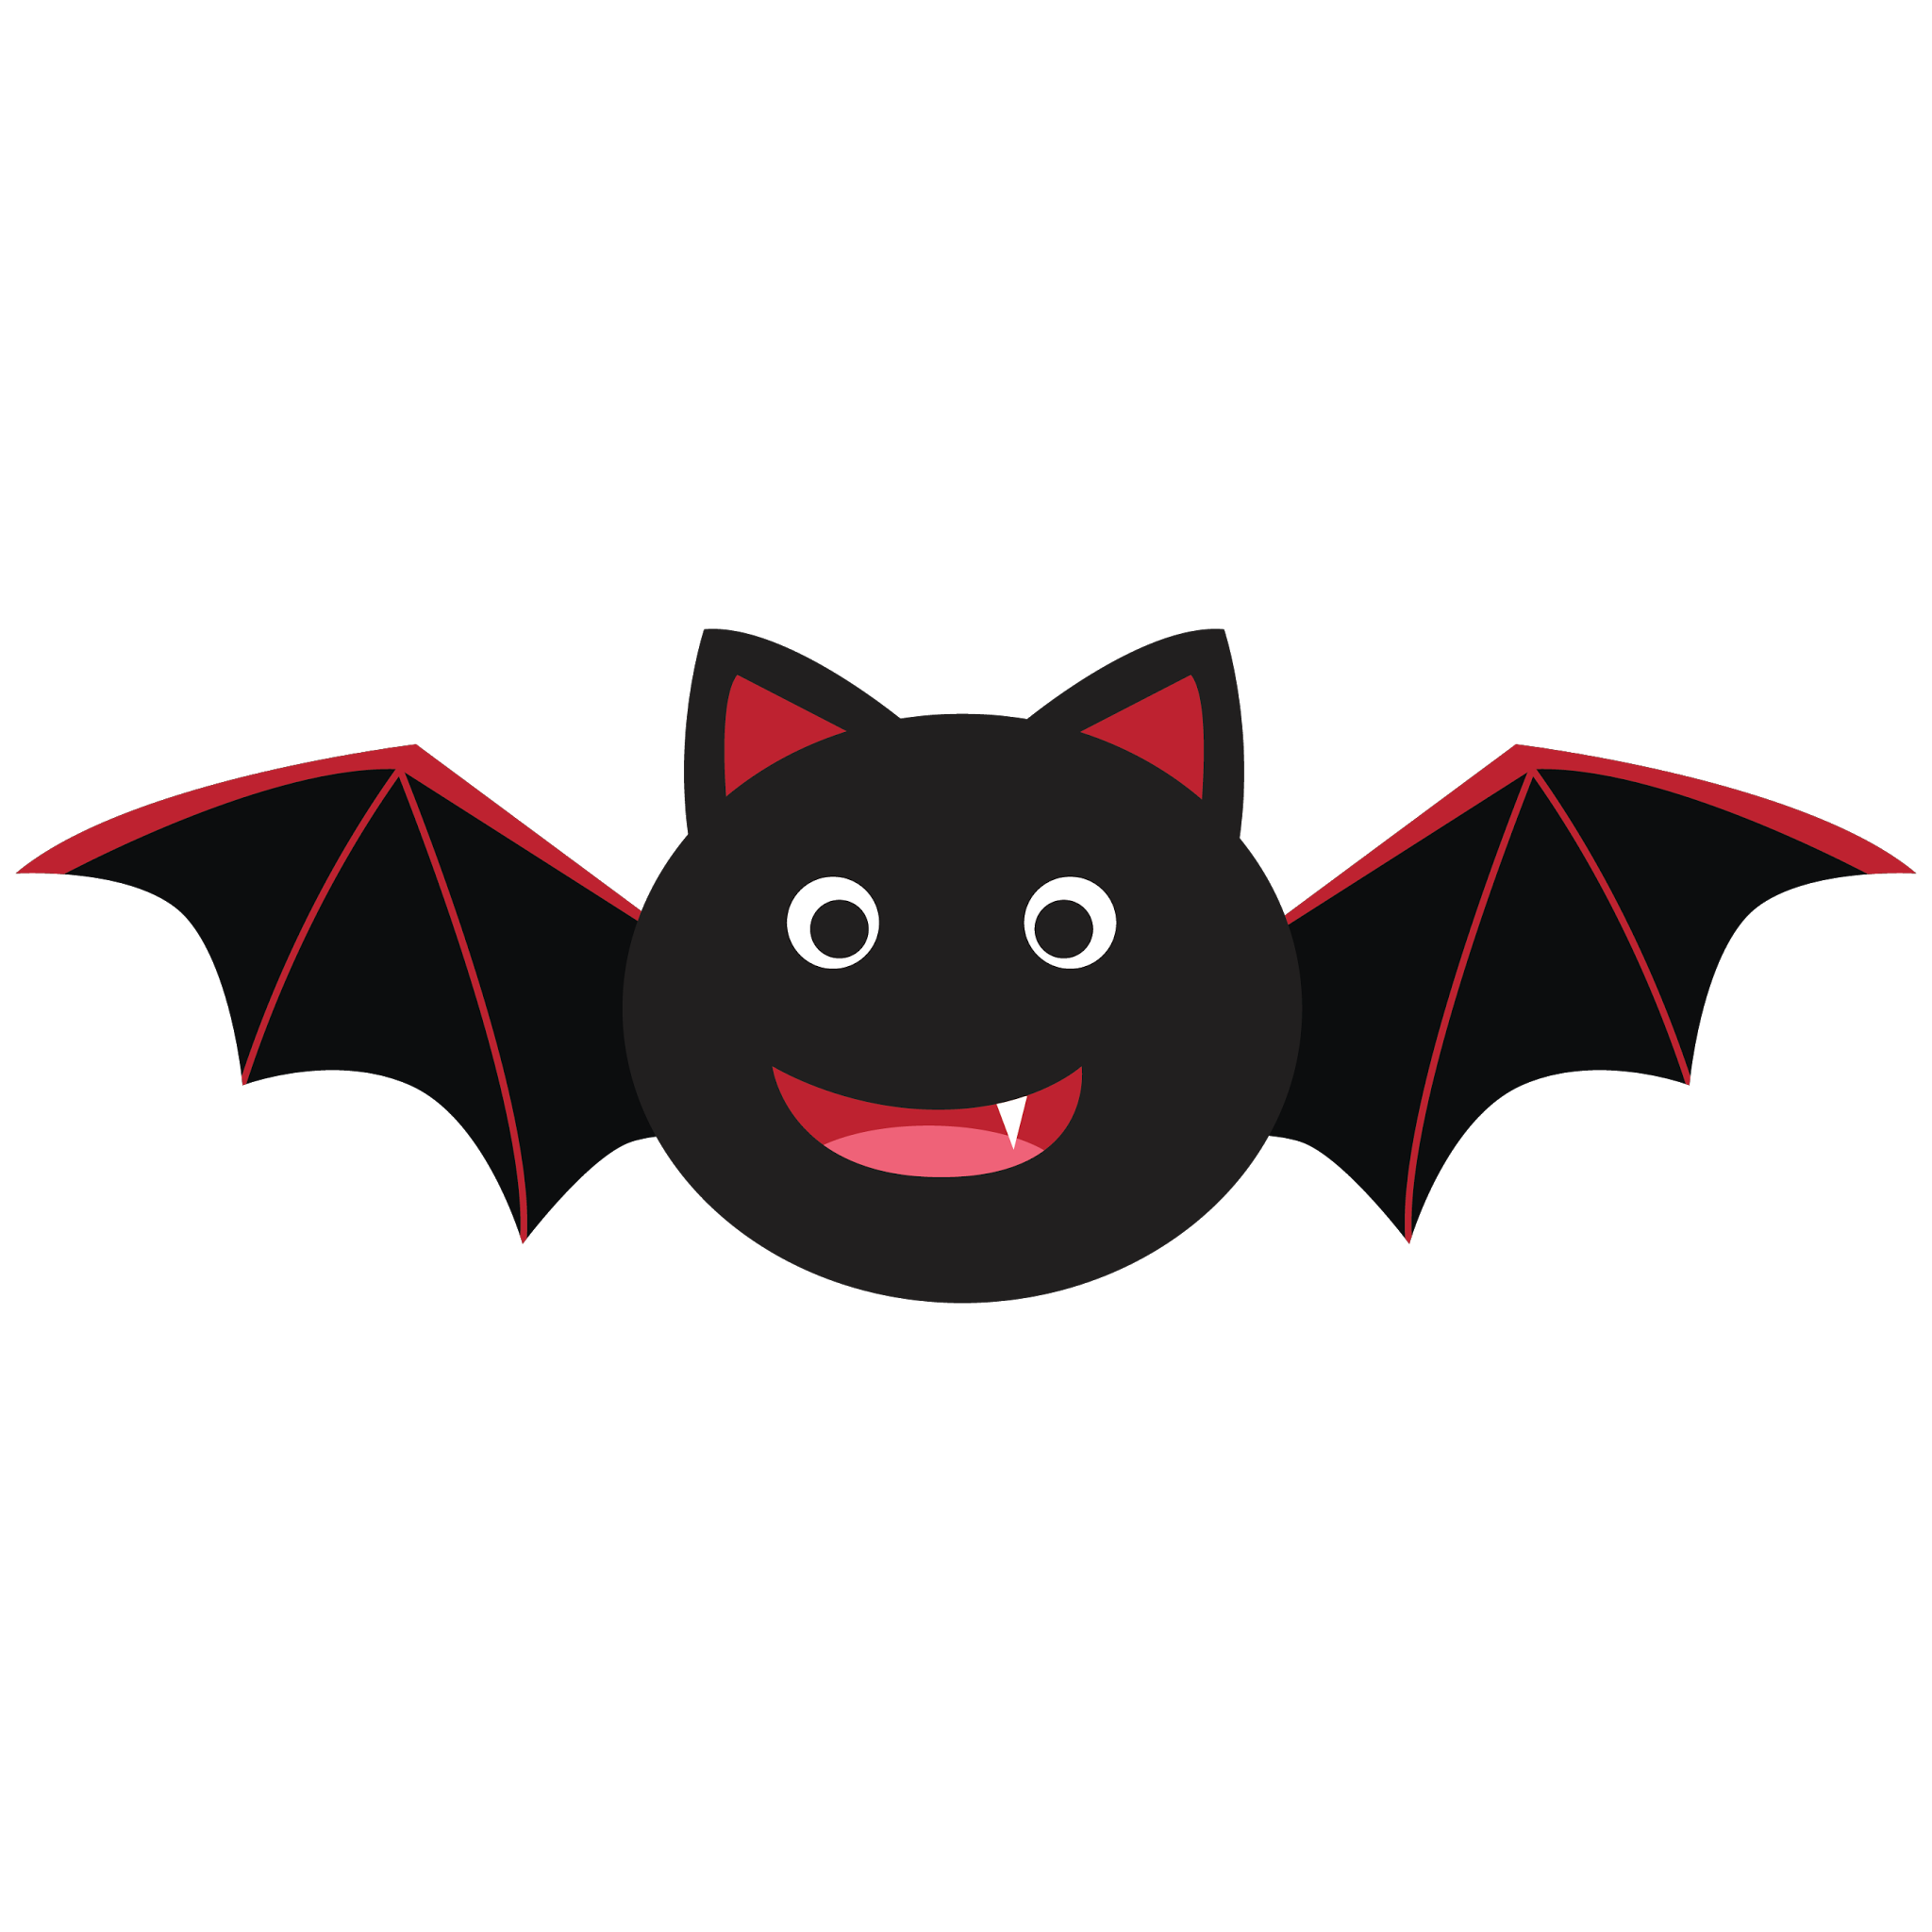 Clipart halloween bat banner royalty free stock 28+ Collection of Bat Clipart For Halloween | High quality, free ... banner royalty free stock